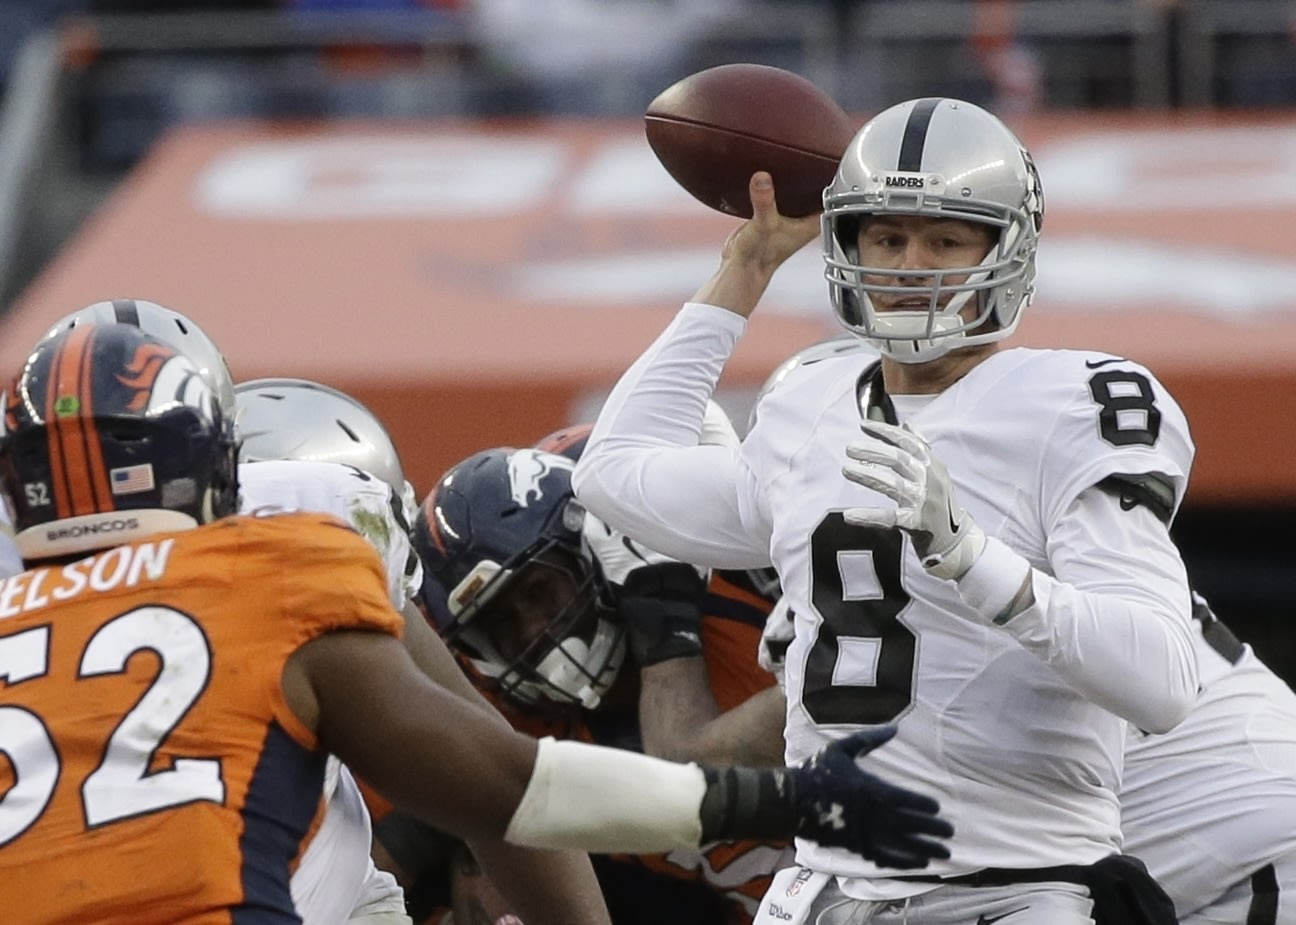 Quarterback Connor Cook, right, will make his first career start for the Oakland Raiders in their first postseason game in 14 years. (AP)